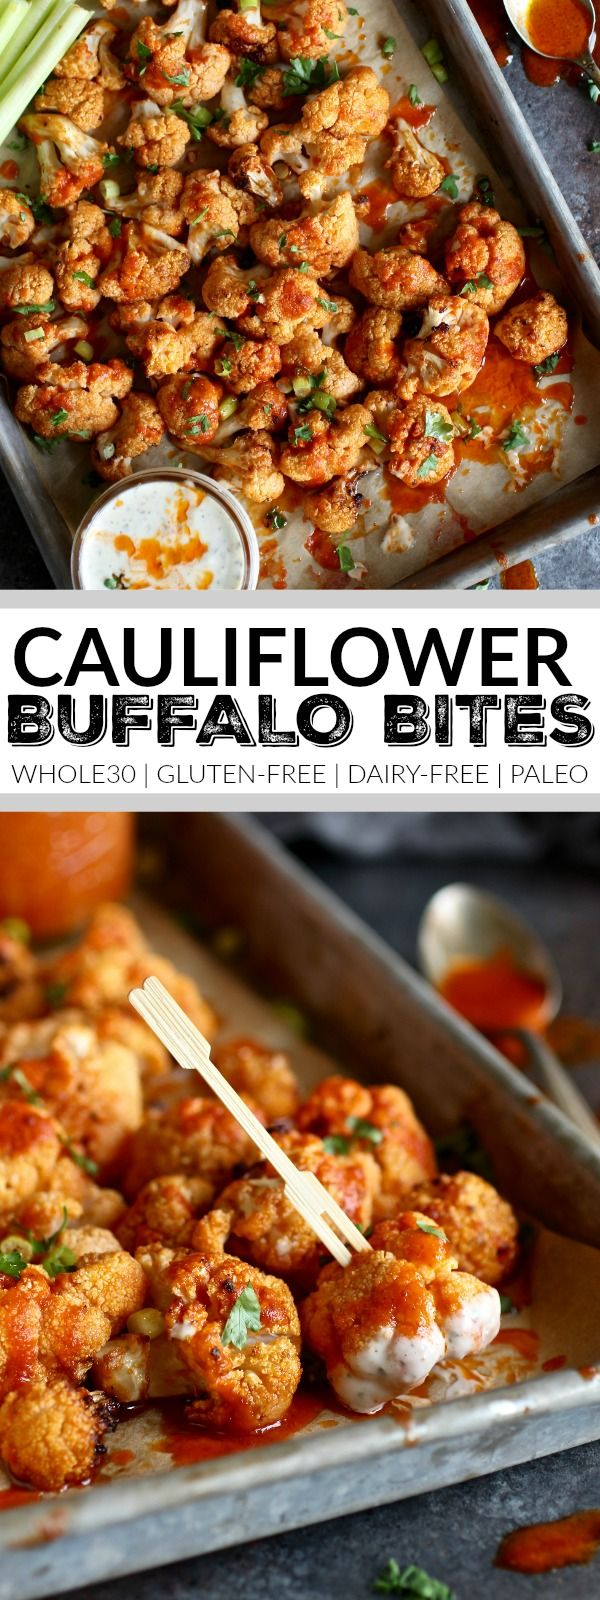 Ingredients +1 large head of cauliflower, stems removed (or 2 – 10 oz. bag cauliflower florets) +1/2 cup Frank's Red Hot Sauce +2.5 Tbsp. ghee (we recommend Pure Indian Foods) +1 Tbsp. coconut aminos +1 tsp. apple cider vinegar +½ tsp. garlic powder +¼ tsp. cayenne pepper (optional) +Ranch for dipping (Homemade Ranch or Whole30 Compliant) +Parsley or green onions, chopped (optional)